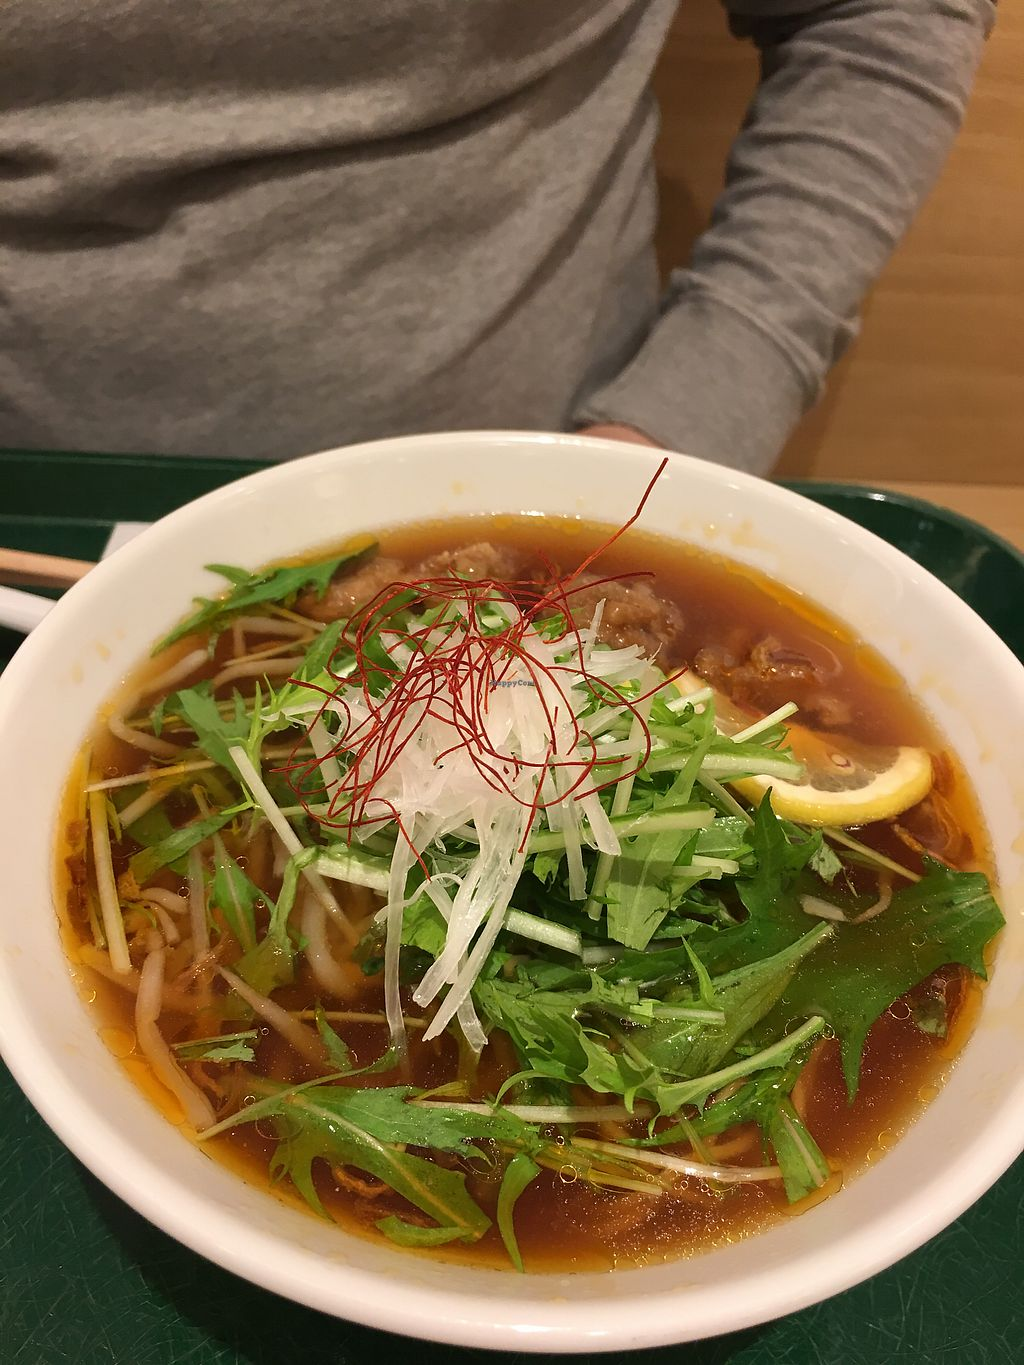 "Photo of T's Tantan - Tokyo Station  by <a href=""/members/profile/Siup"">Siup</a> <br/>Ramen  <br/> March 28, 2018  - <a href='/contact/abuse/image/29533/377116'>Report</a>"